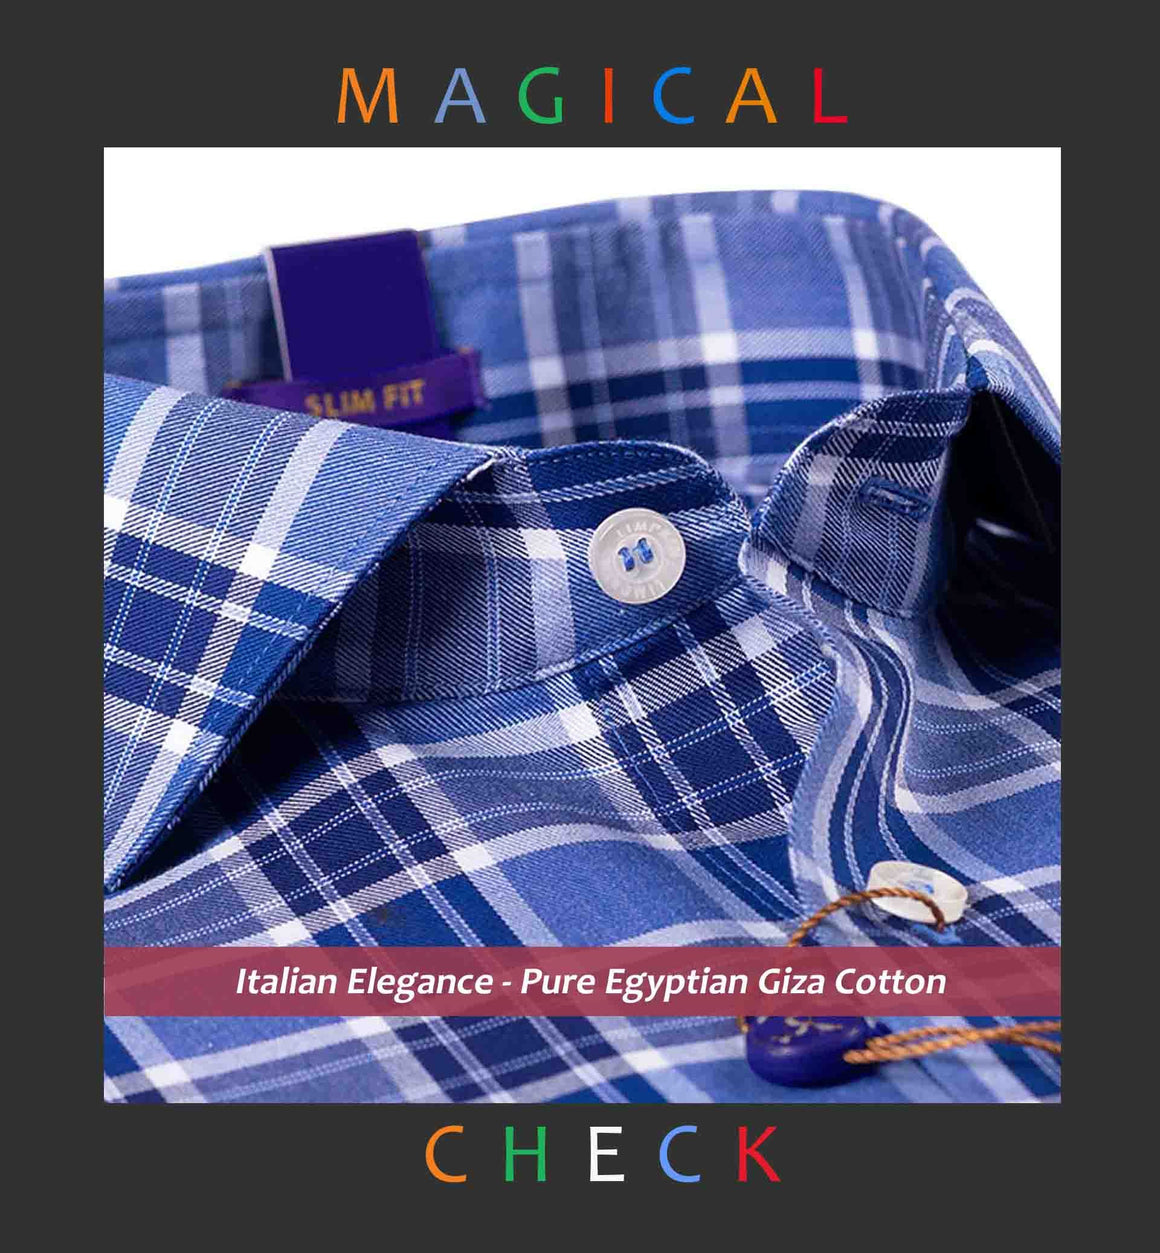 PERTH- NAVY & WHITE MAGICAL CHECK